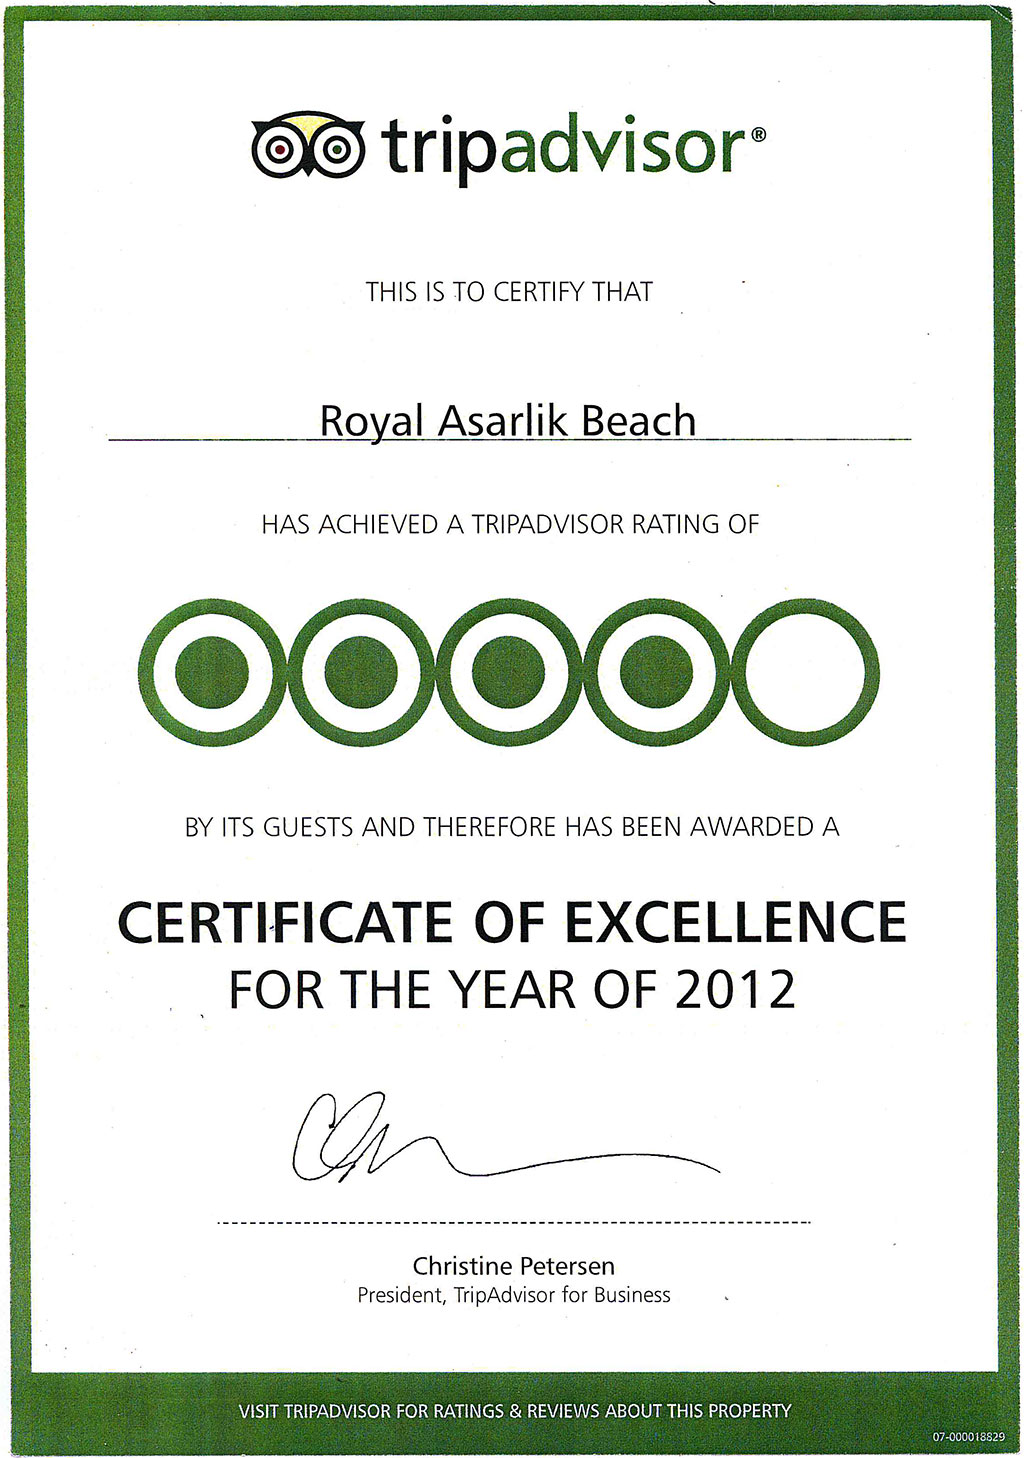 12 certificate awards royal asarlk beach hotel spa gumbet 12 certificate awards royal asarlk beach hotel spa gumbet bodrum turkey xflitez Images